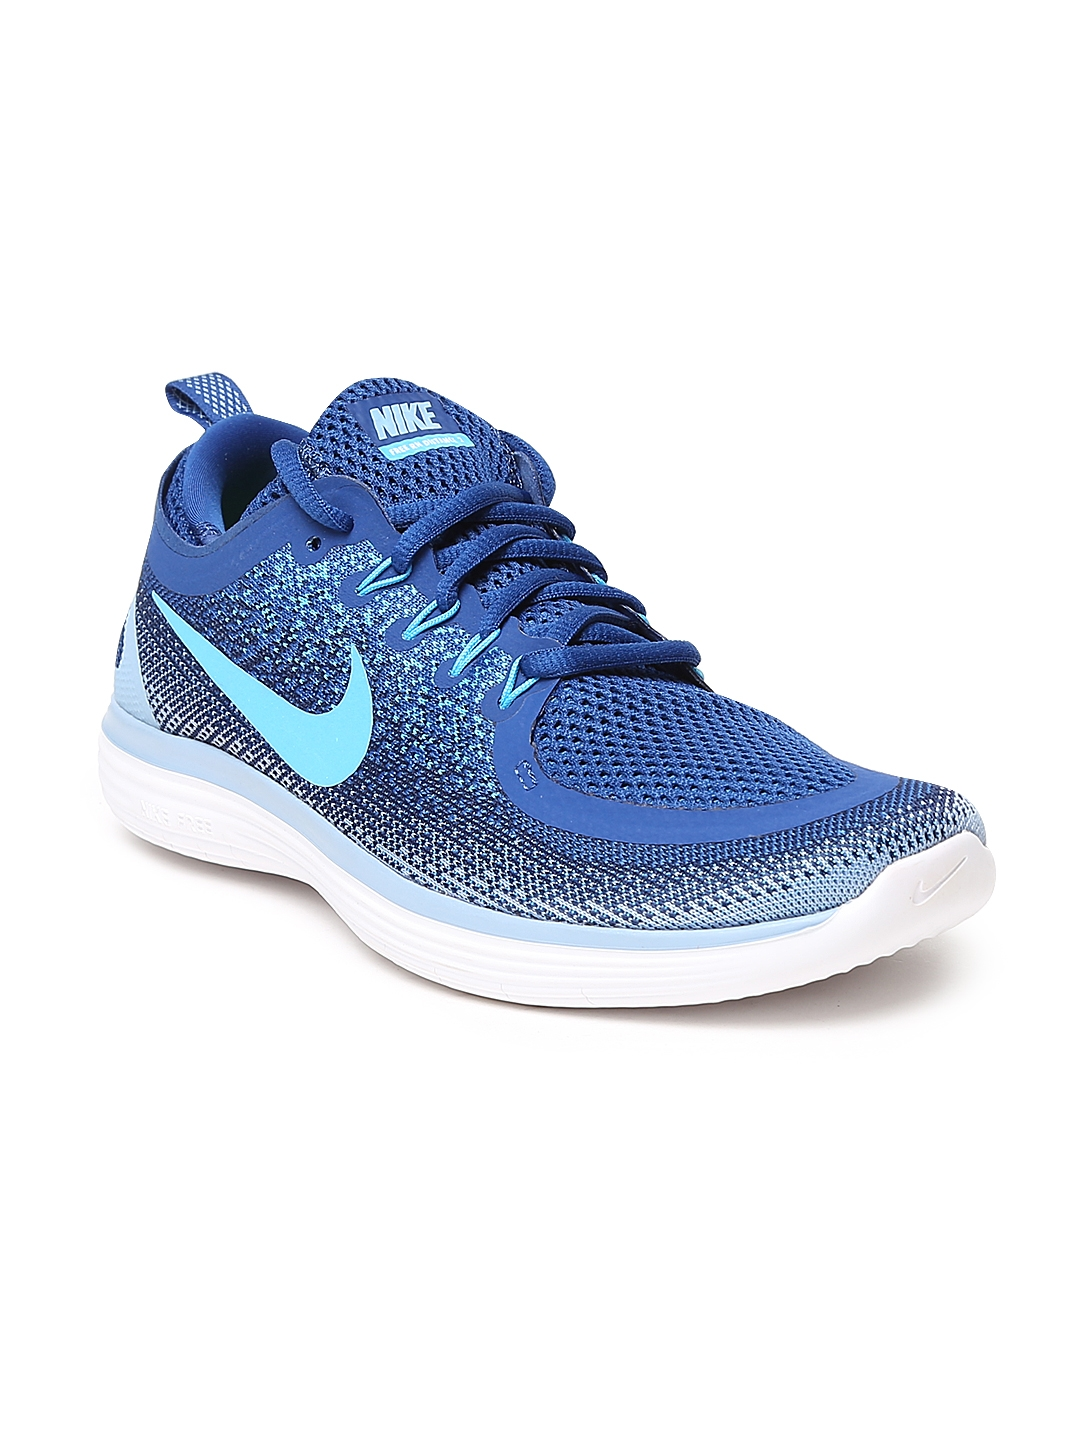 4f48f1d3be77 Buy Nike Men Blue FREE RN DISTANCE 2 Running Shoes - Sports Shoes ...